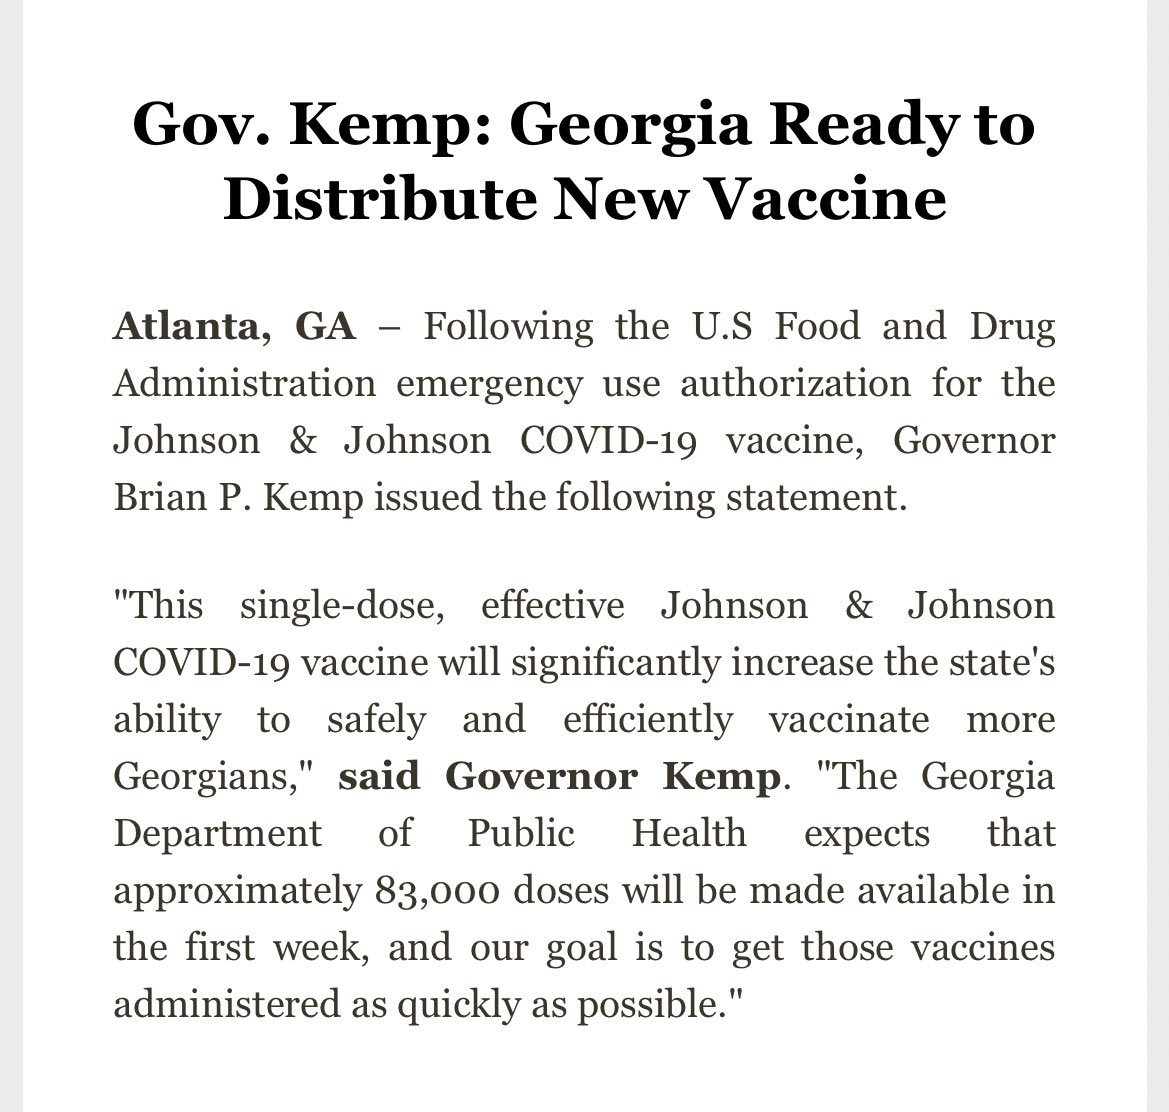 """Georgia = ready  The state is set to receive 83k doses of the J&J vaccine in the first week, and the goal is to administer 'em as """"quickly as possible."""" #gapol"""